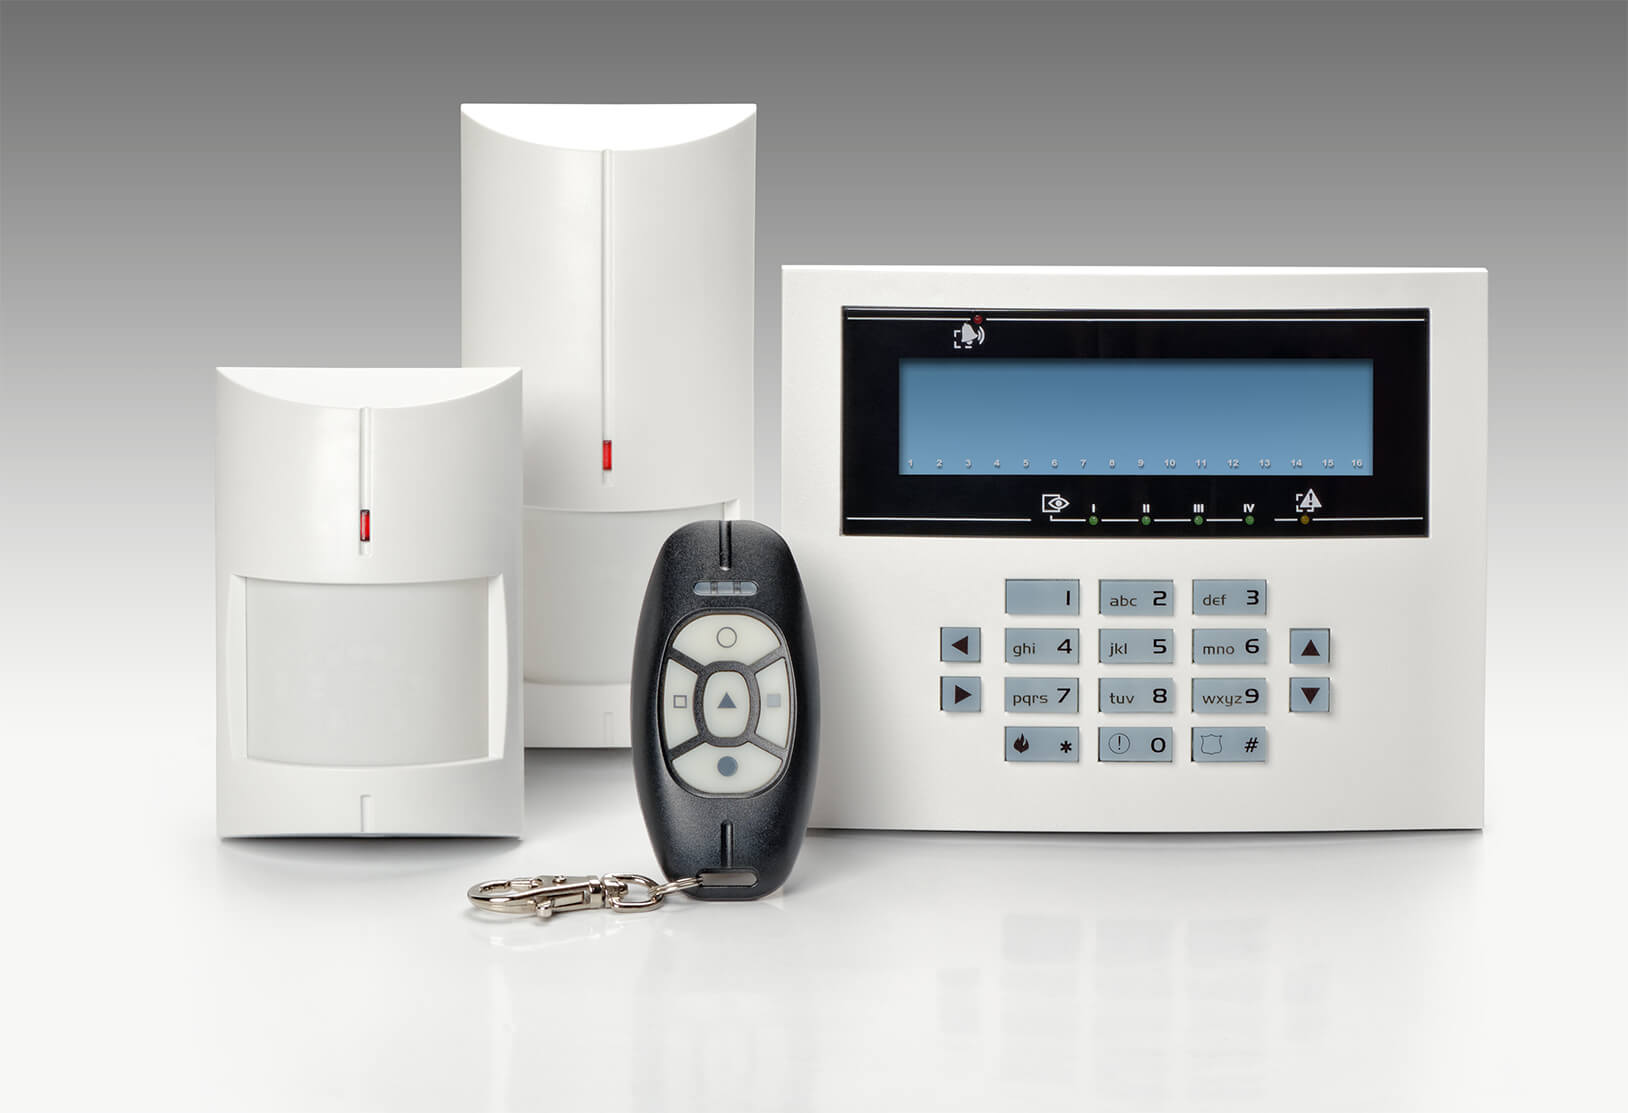 Business & Residential NSI / NACOSS Approved Burglar Alarms In Camberwell SE22 - Local Camberwell SE22 security company.Call 02078872244 - Dedicated to Safety & Security. Companies, shops and homes ..